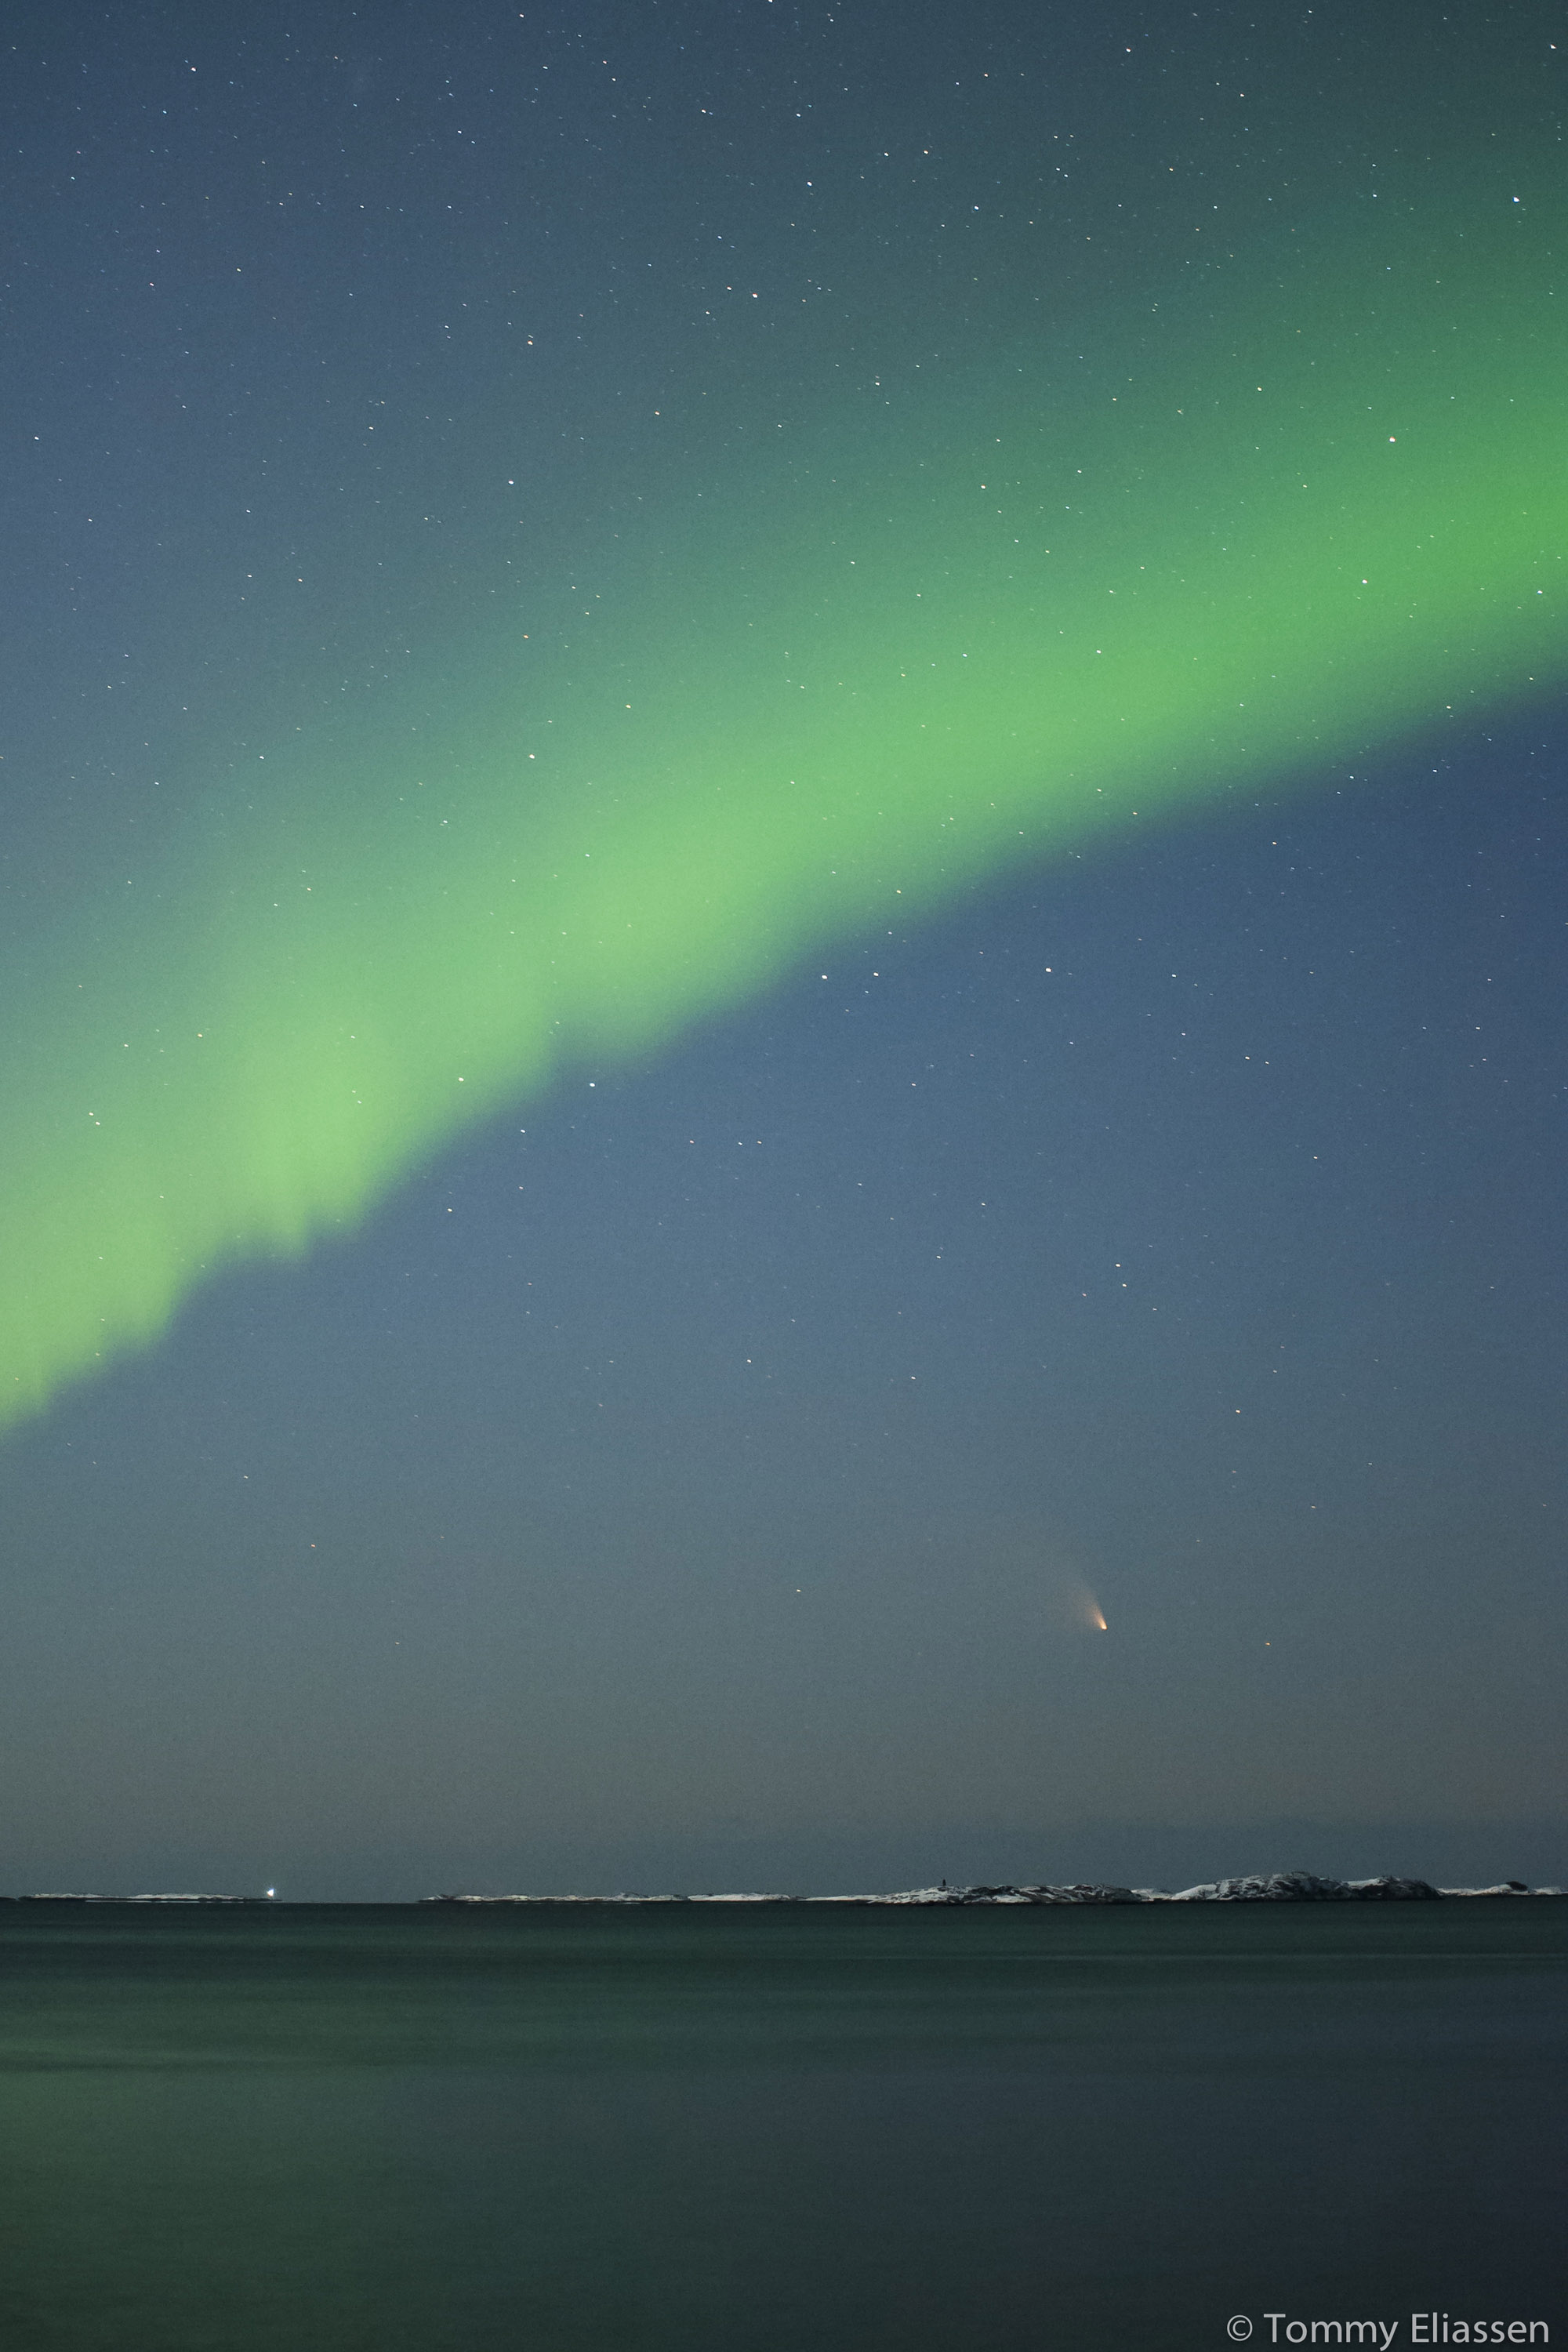 Comet Pan-STARRS and Northern Lights: Tommy Eliassen